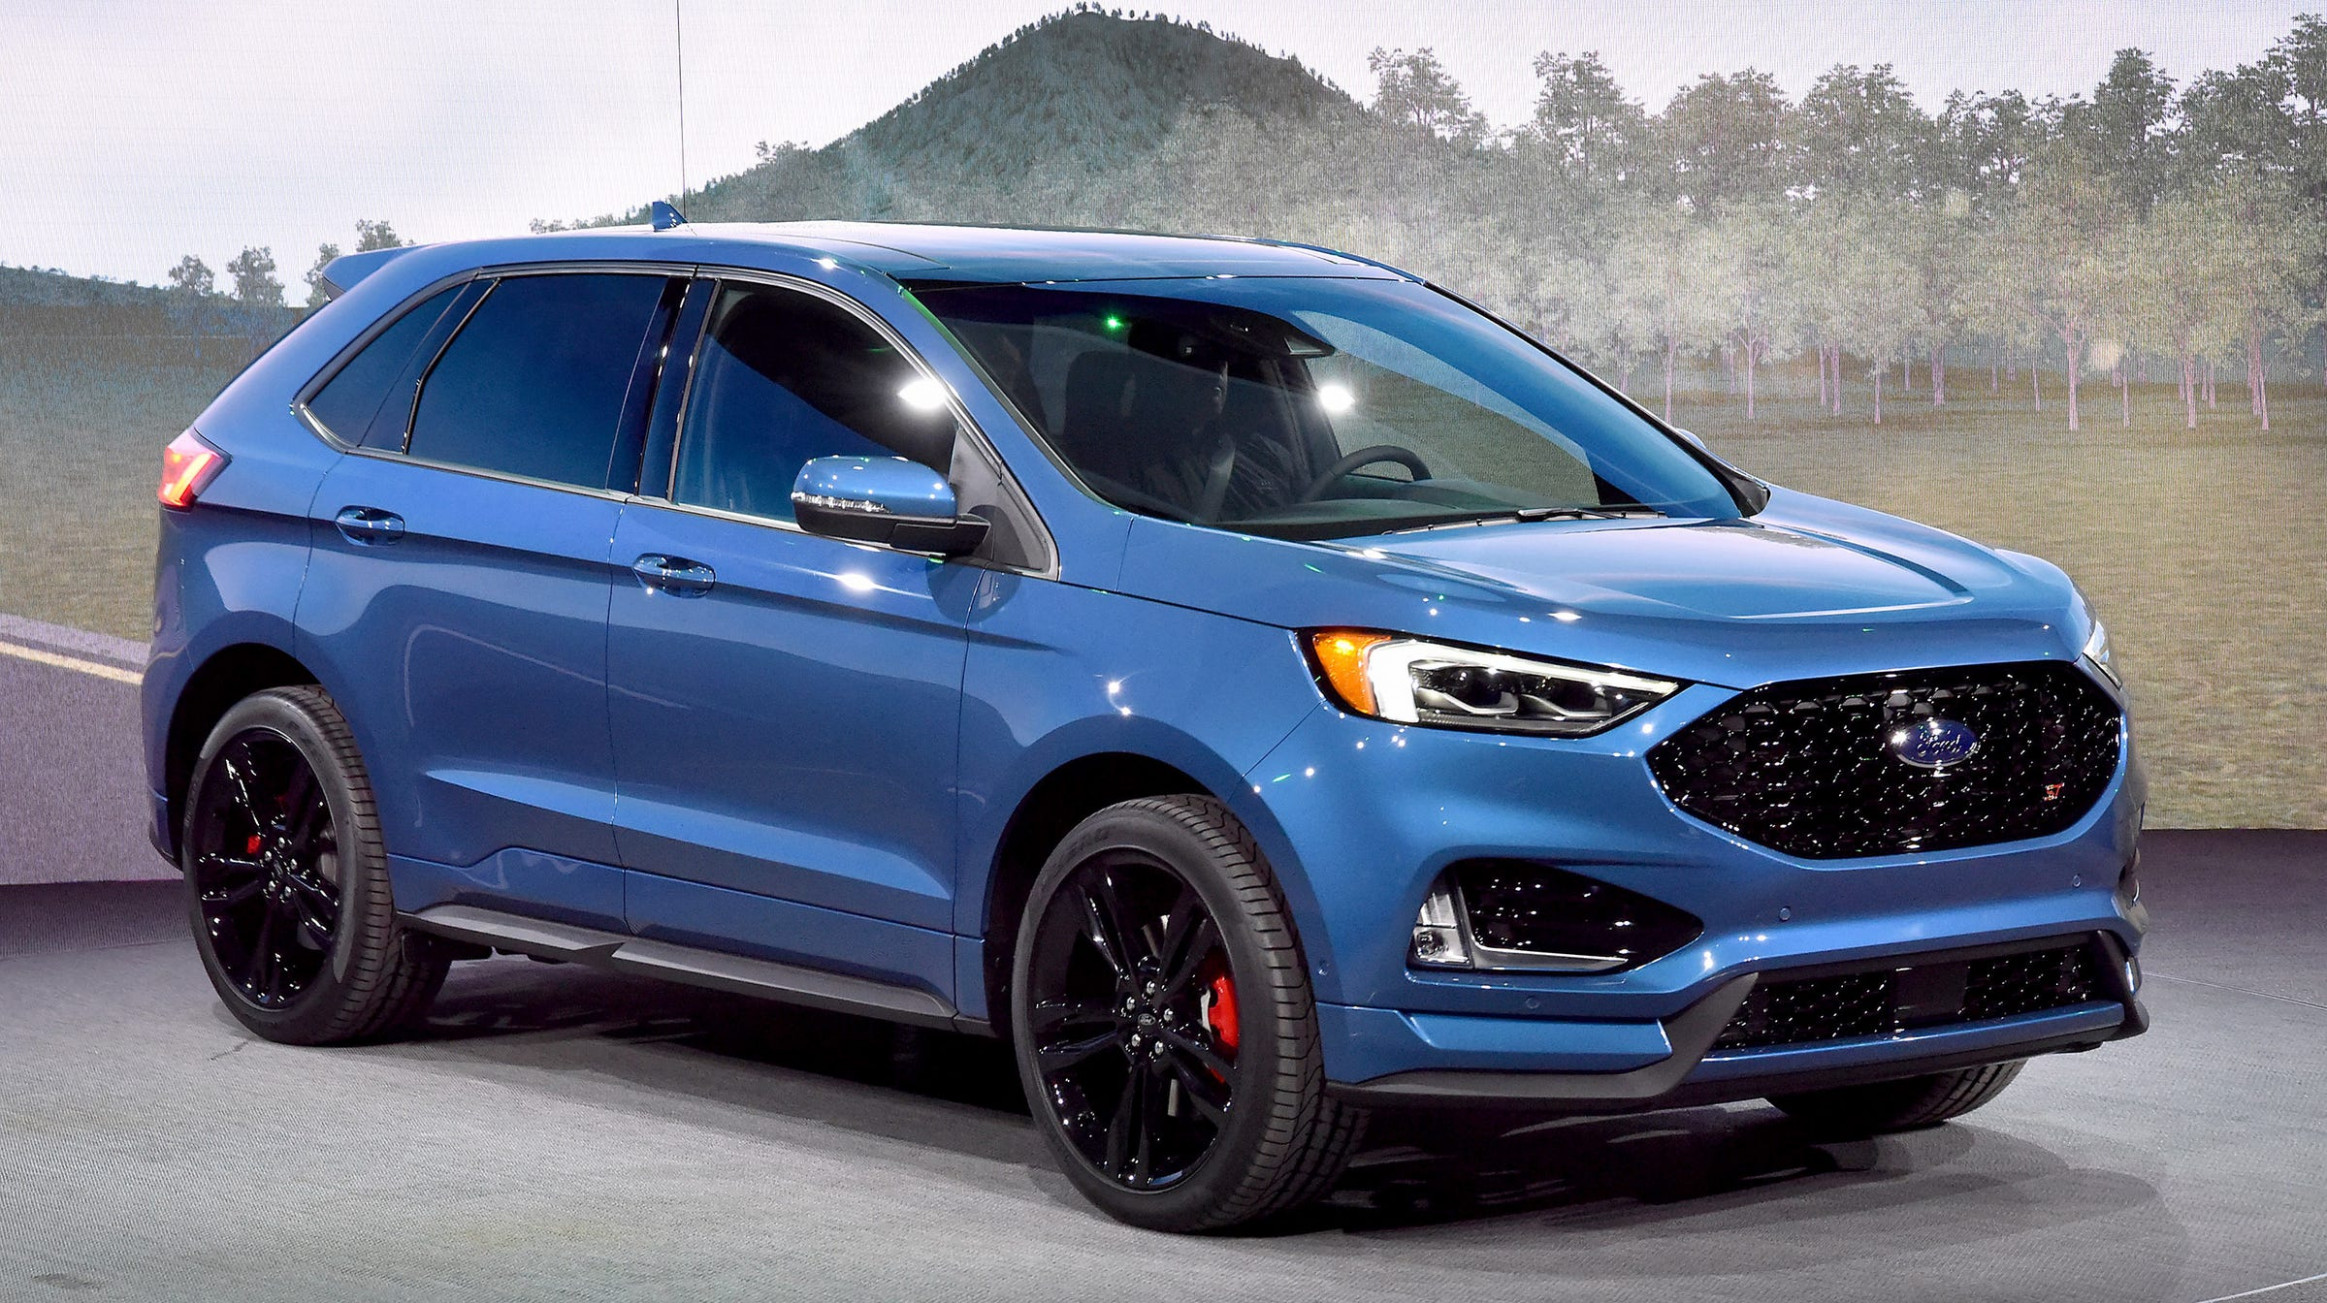 Redesign and Concept 2022 Ford Edge